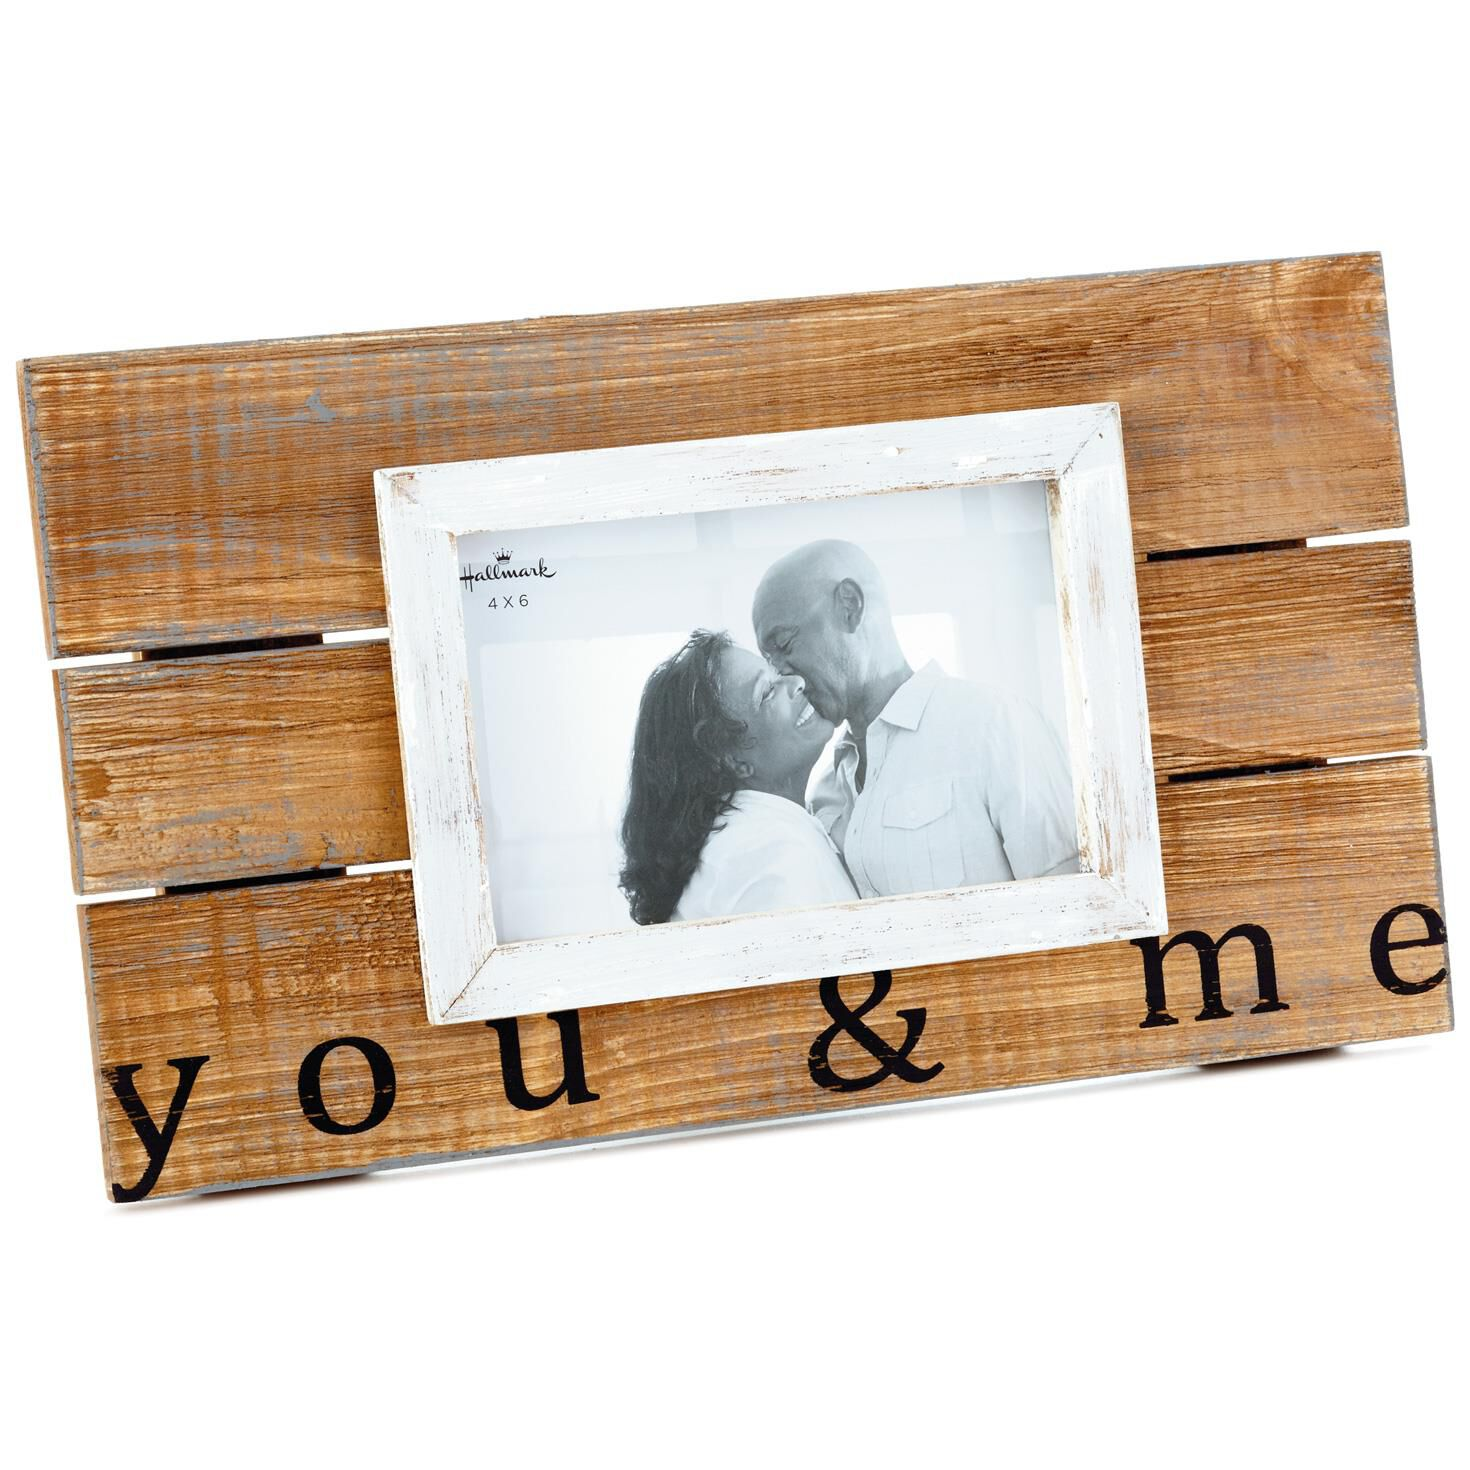 You & Me Wood Slat Picture Frame, 4x6 - Picture Frames - Hallmark